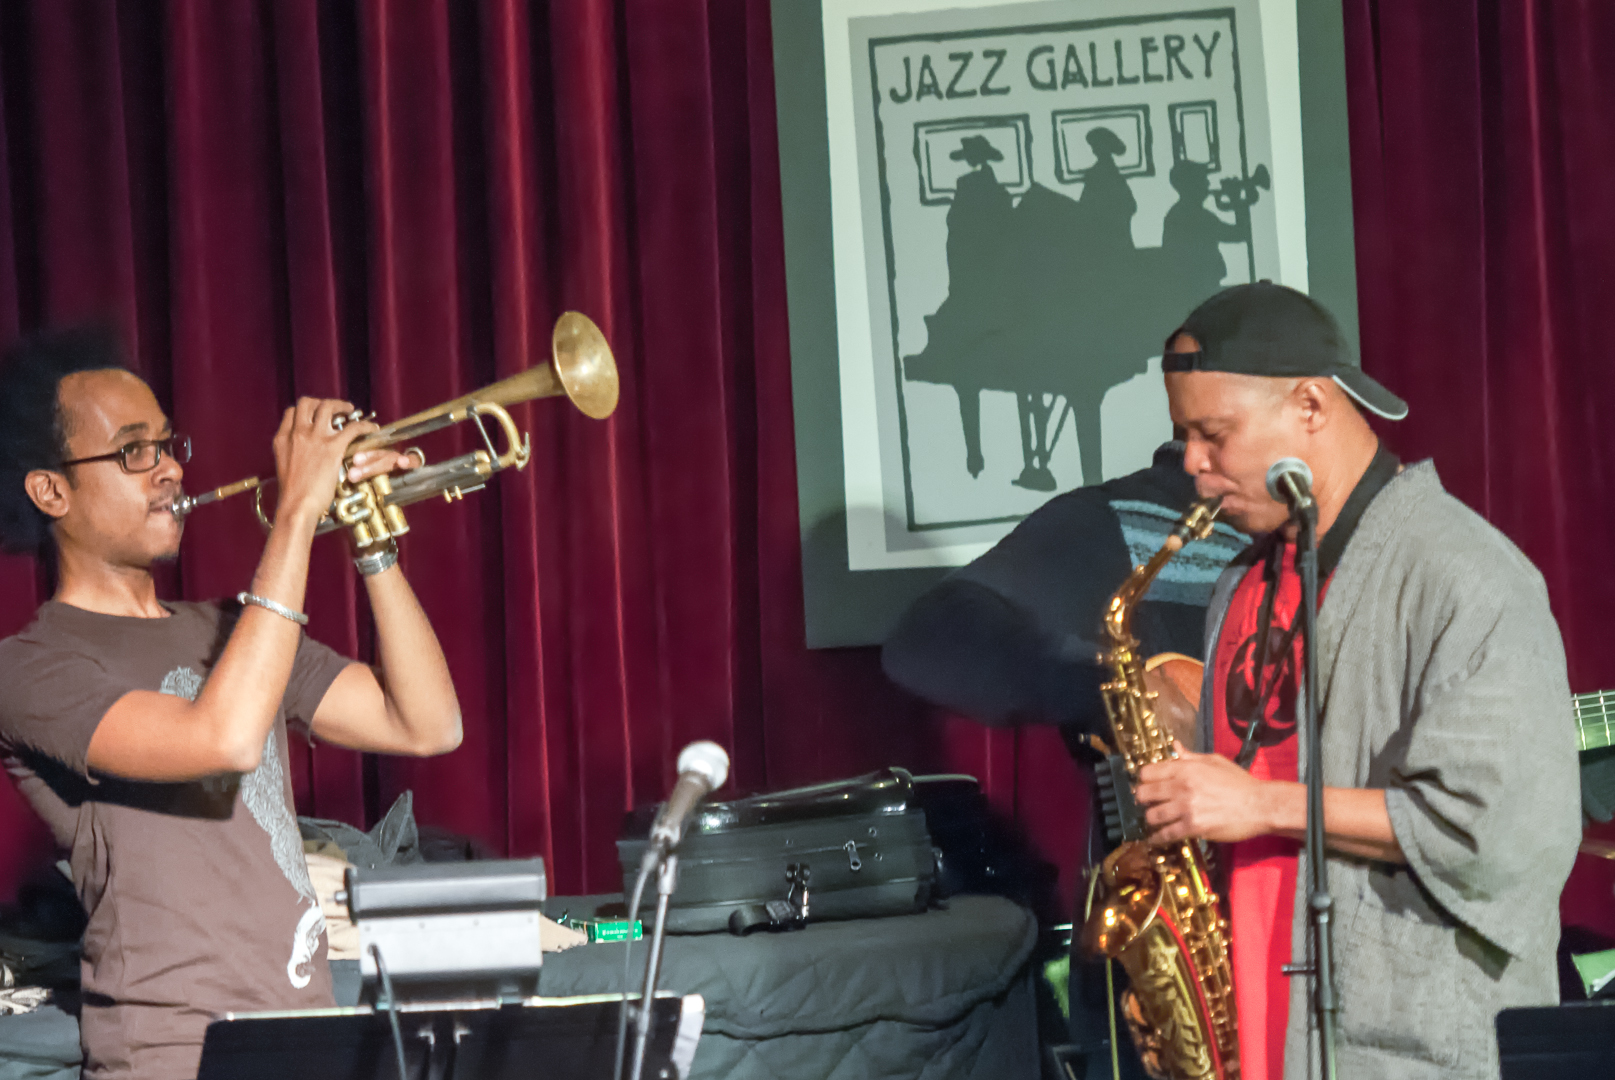 Jonathan Finlayson and Steve Coleman and the Five Elements at the Jazz Gallery